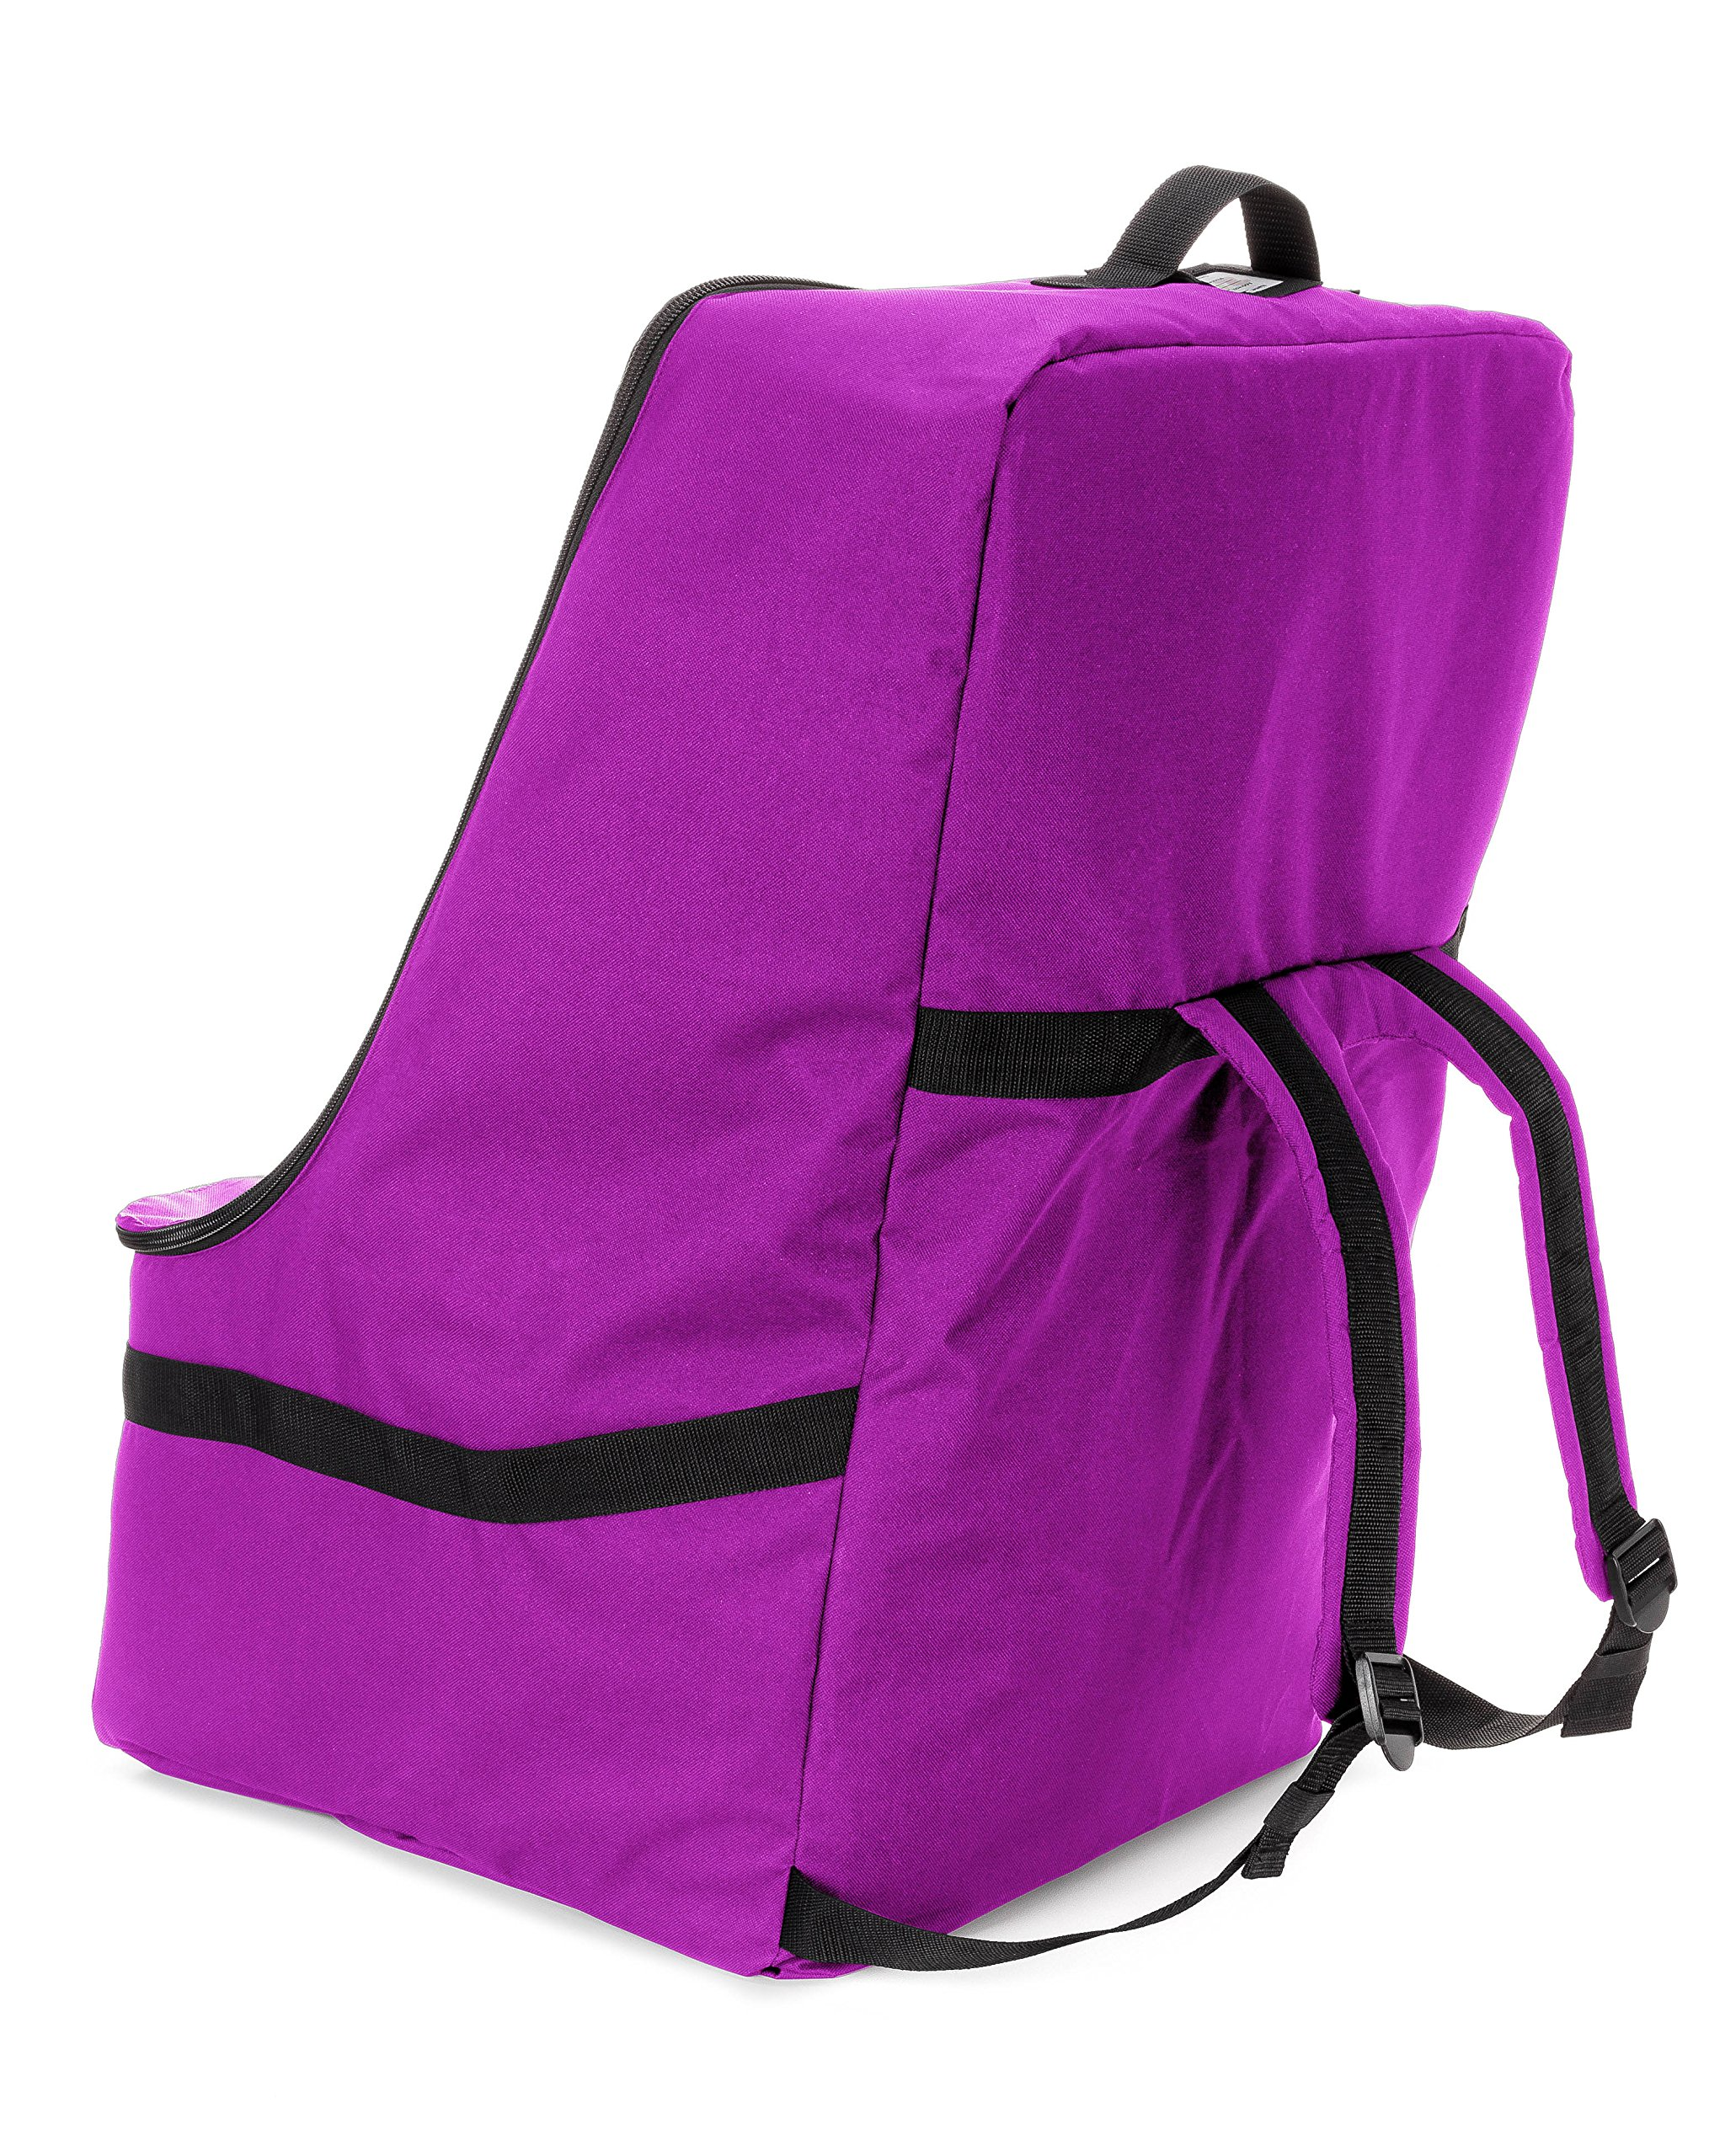 ZOHZO Car Seat Travel Bag — Adjustable, Padded Backpack for Car Seats — Car Seat Travel Tote — Save Money, Make Traveling Easier — Compatible with Most Name Brand Car Seats (Purple with Black Trim) by Zohzo (Image #4)